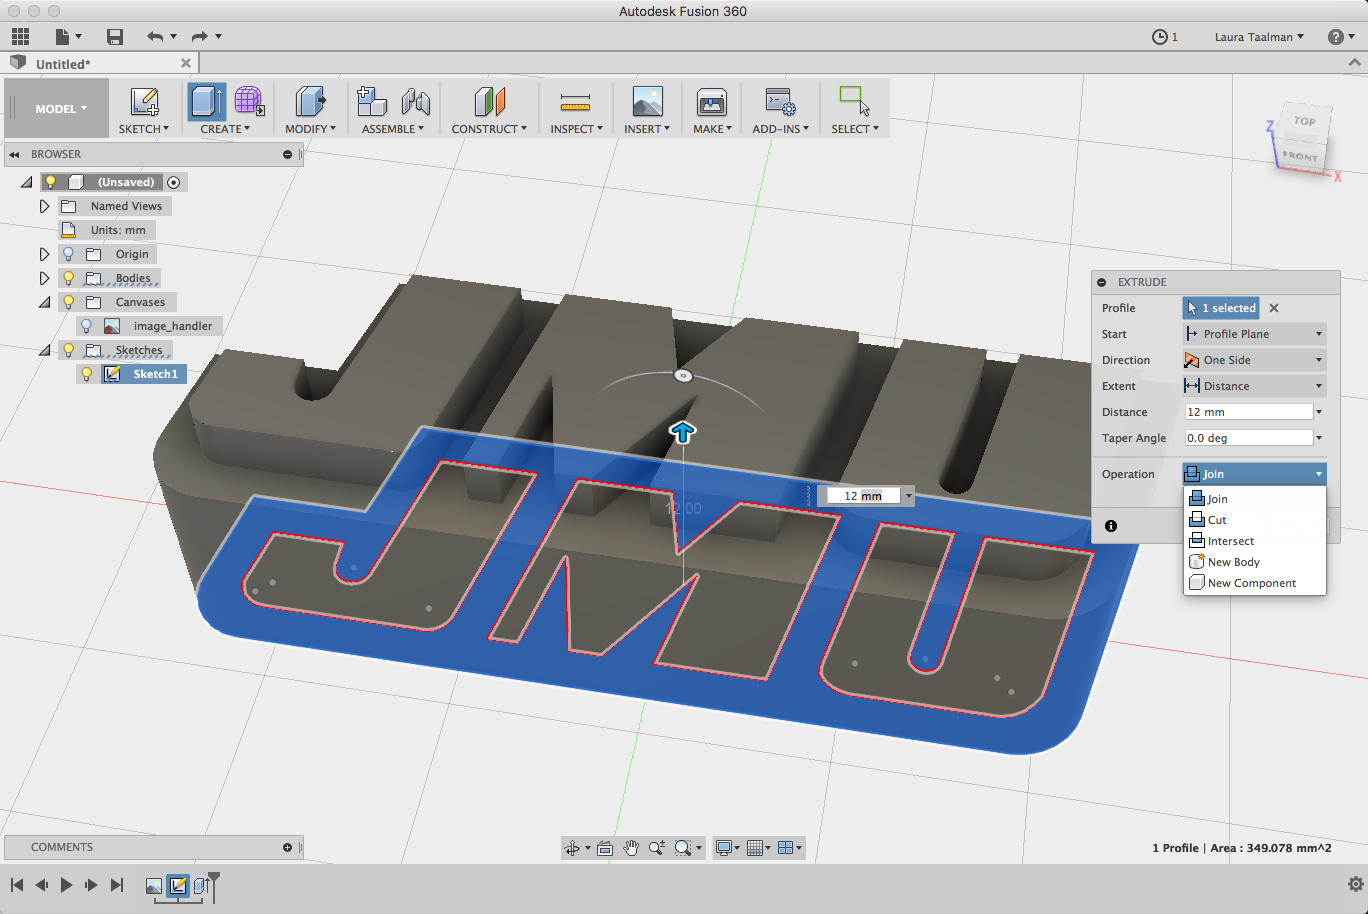 Candy Mold Presses With Fusion 360 - mathgrrl